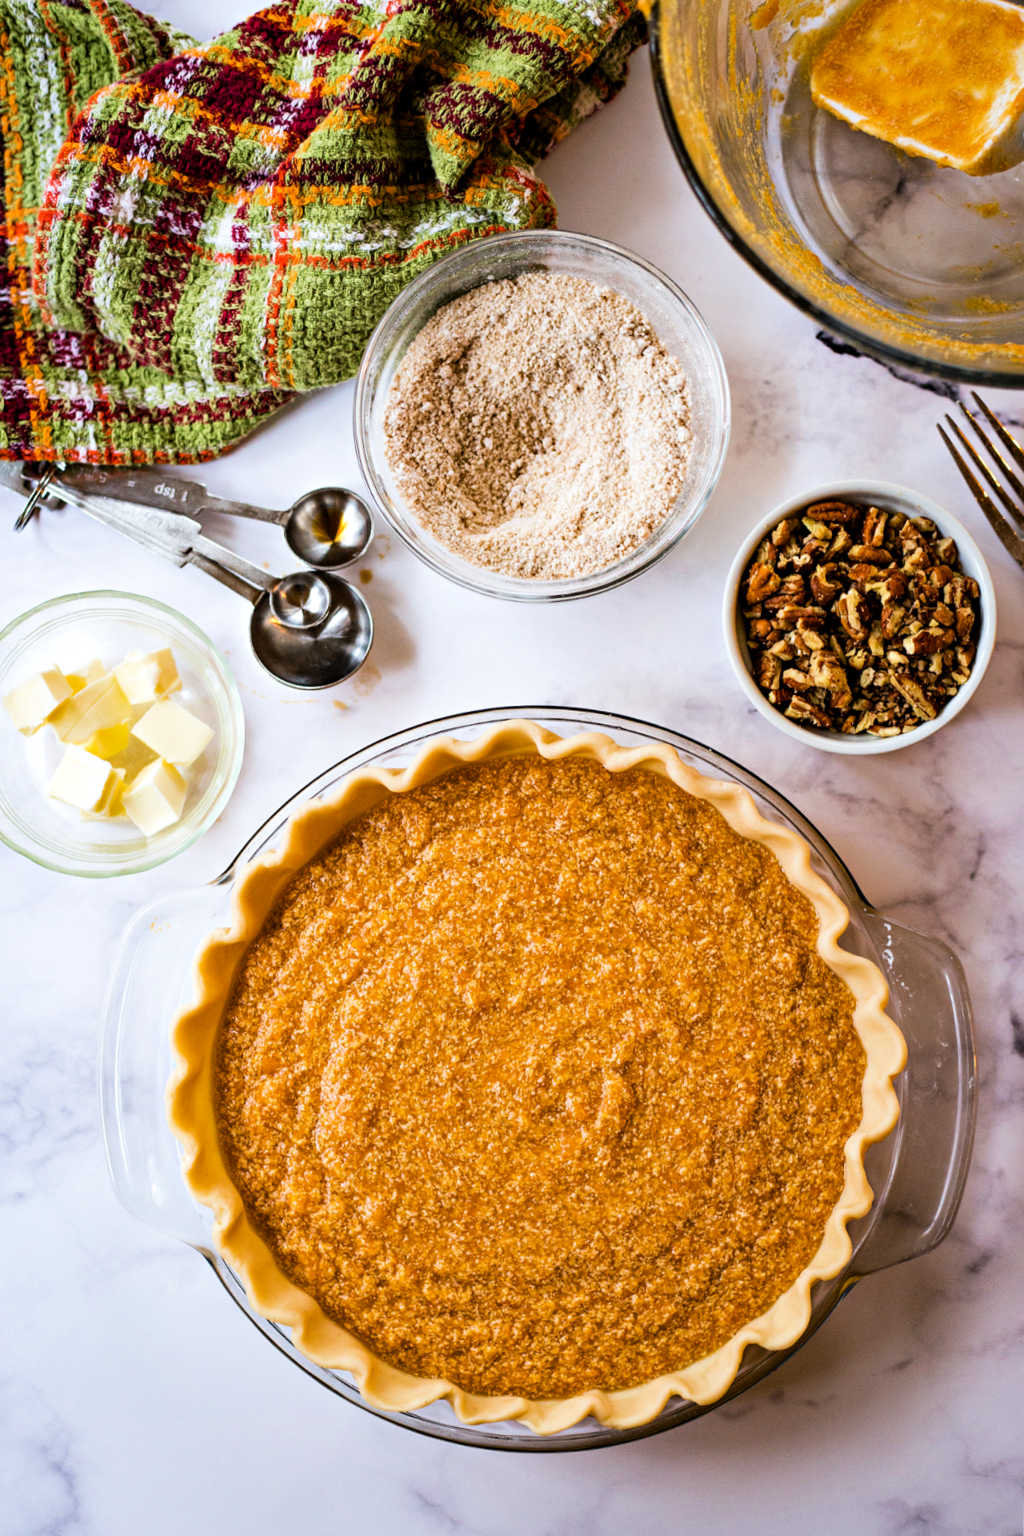 unbaked sweet potato pie on a table ready for the oven